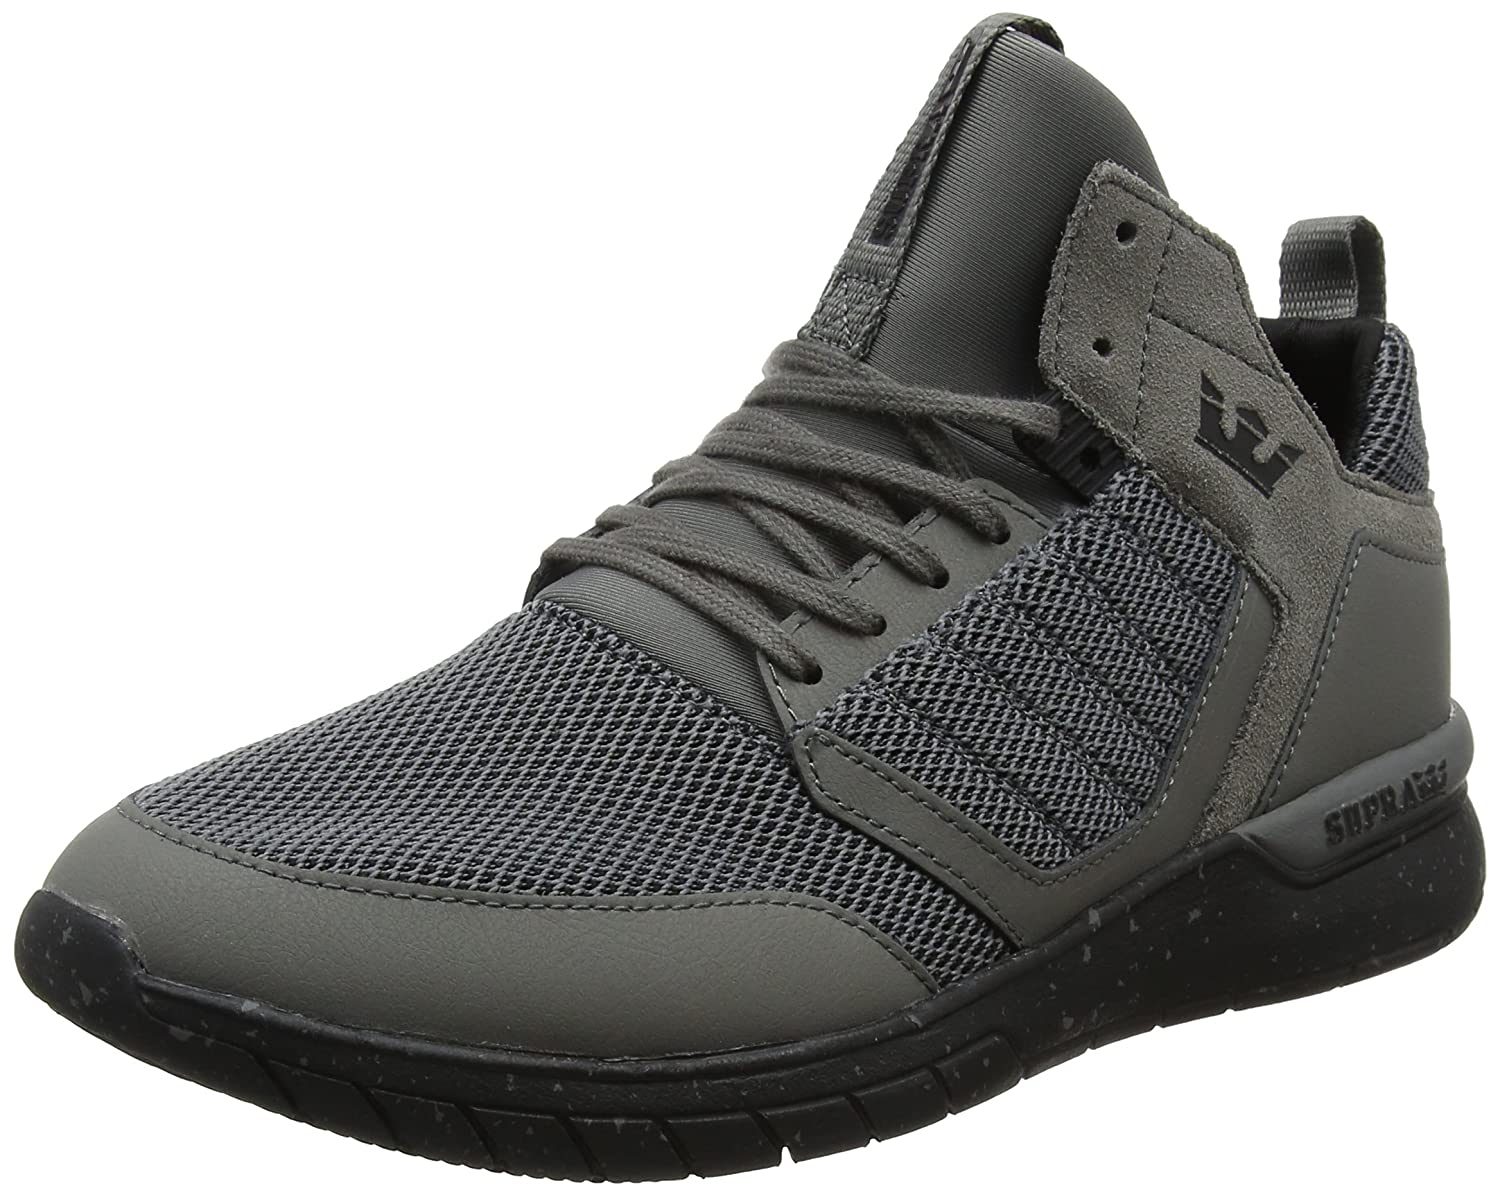 Method Sneakers Basses Method Sneakers Supra Supra Basses HommeNoir HommeNoir Method Supra gIyfvYb76